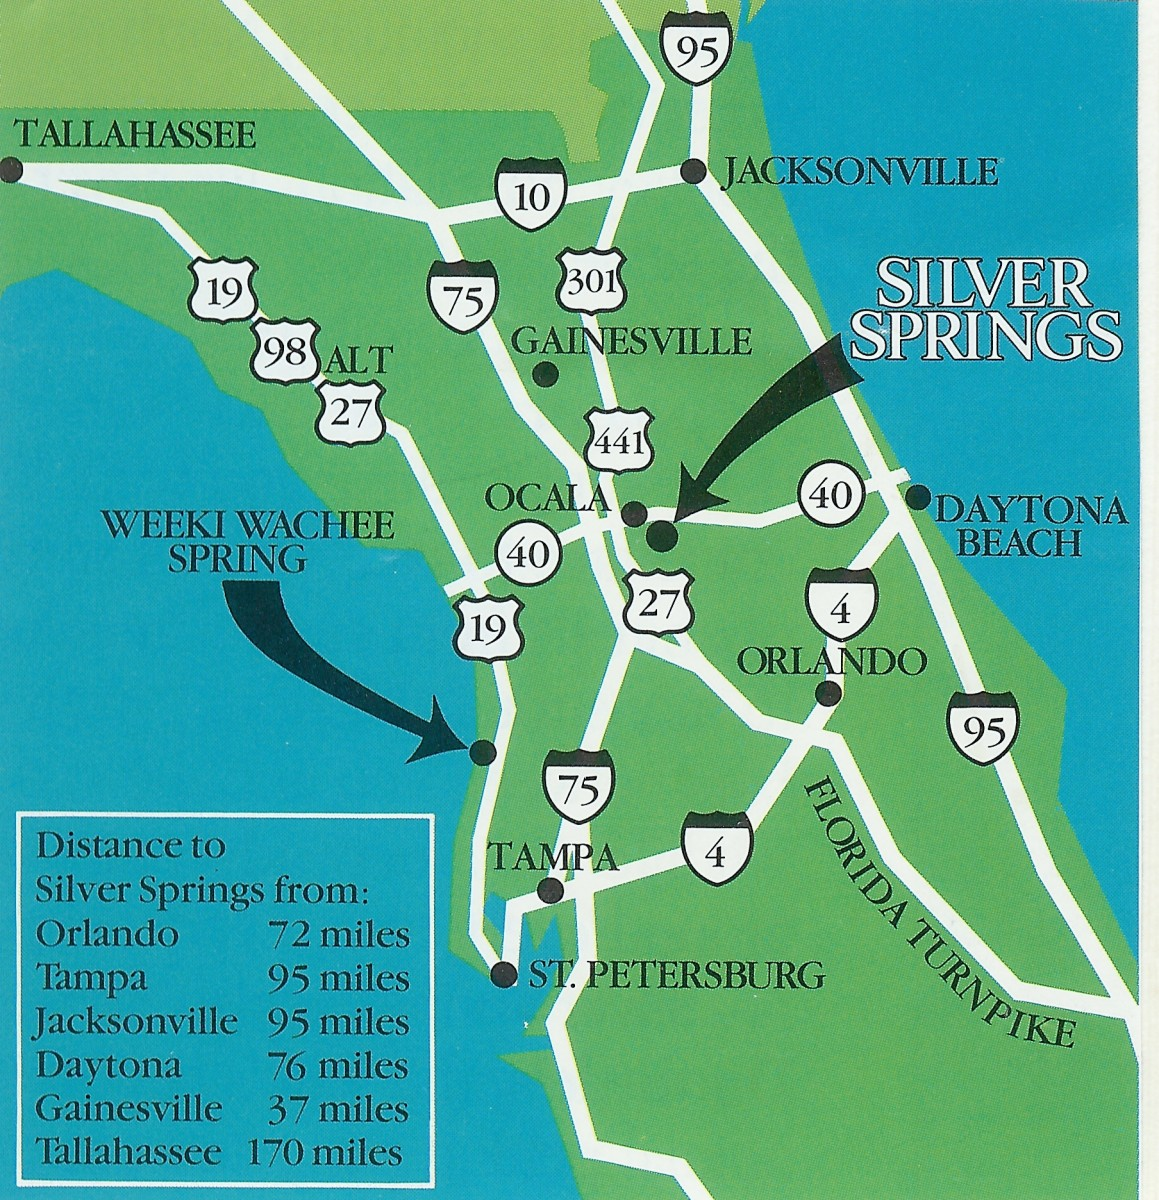 The location of Silver Springs in the north-central part of Florida